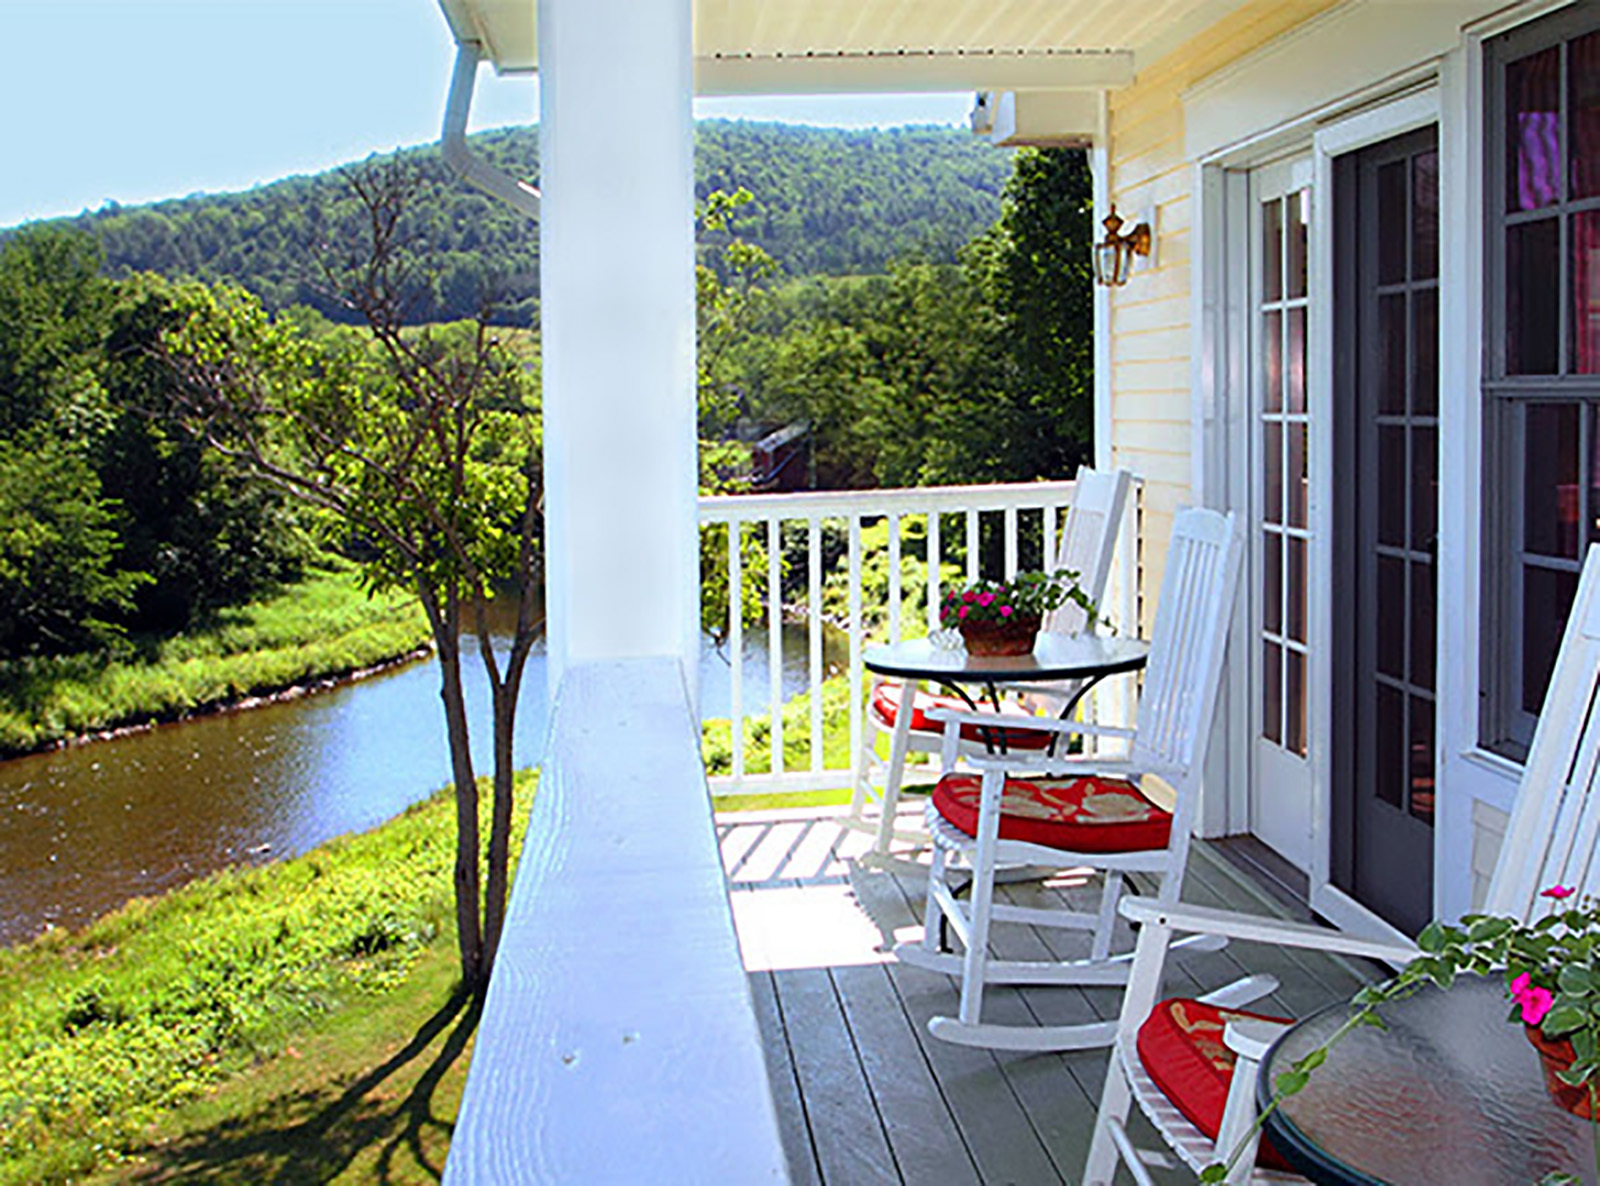 the-shire-in-woodstock-vermont_porch-02062017-103149_original.jpg?mtime=20180619122640#asset:102190